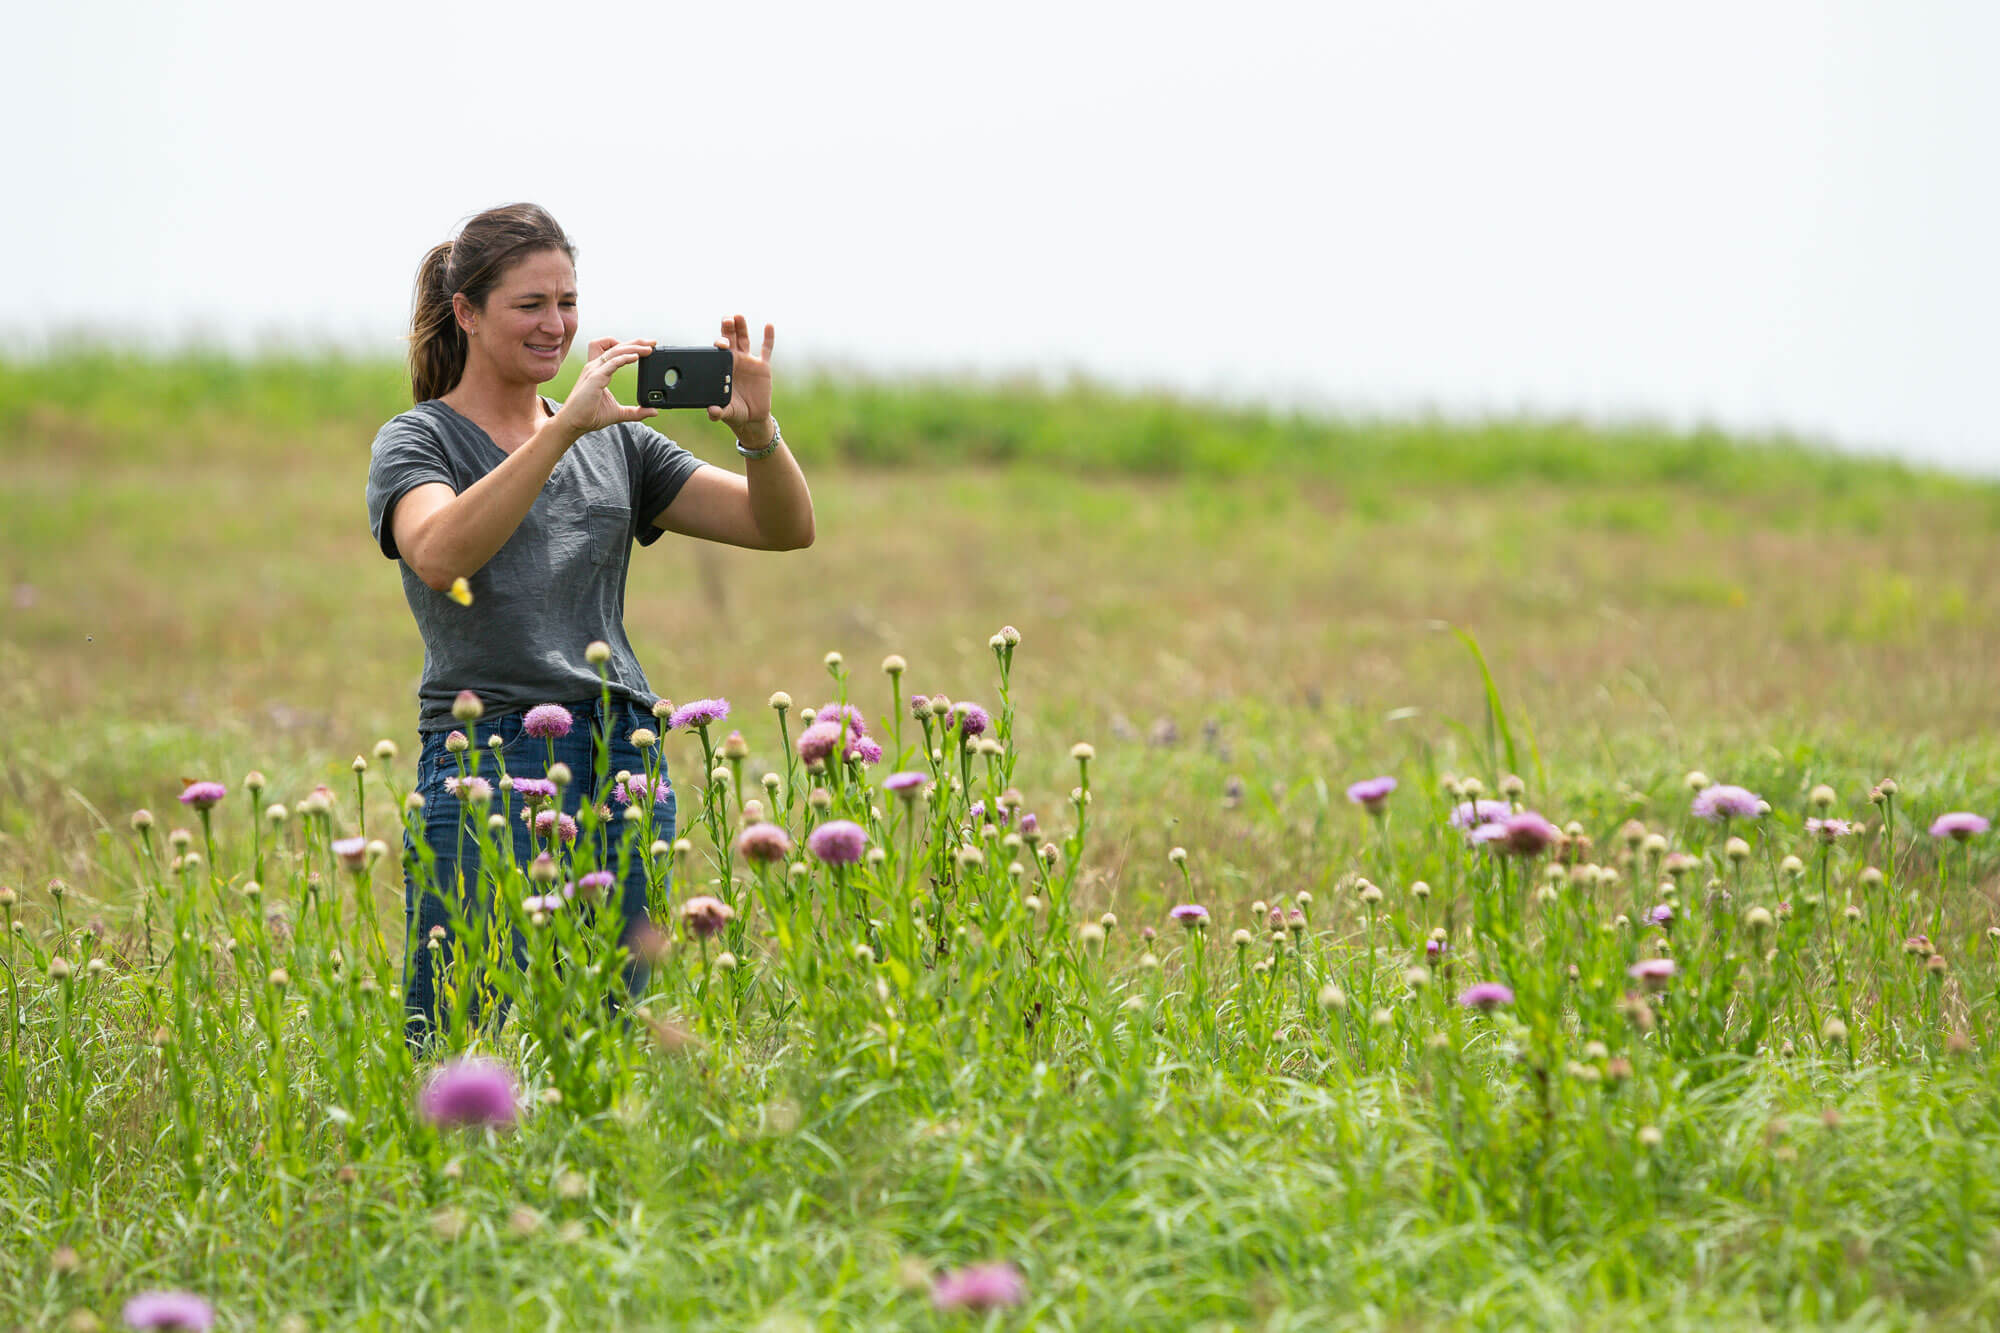 Meredith Ellis taking a photo of her pasture with her smartphone.